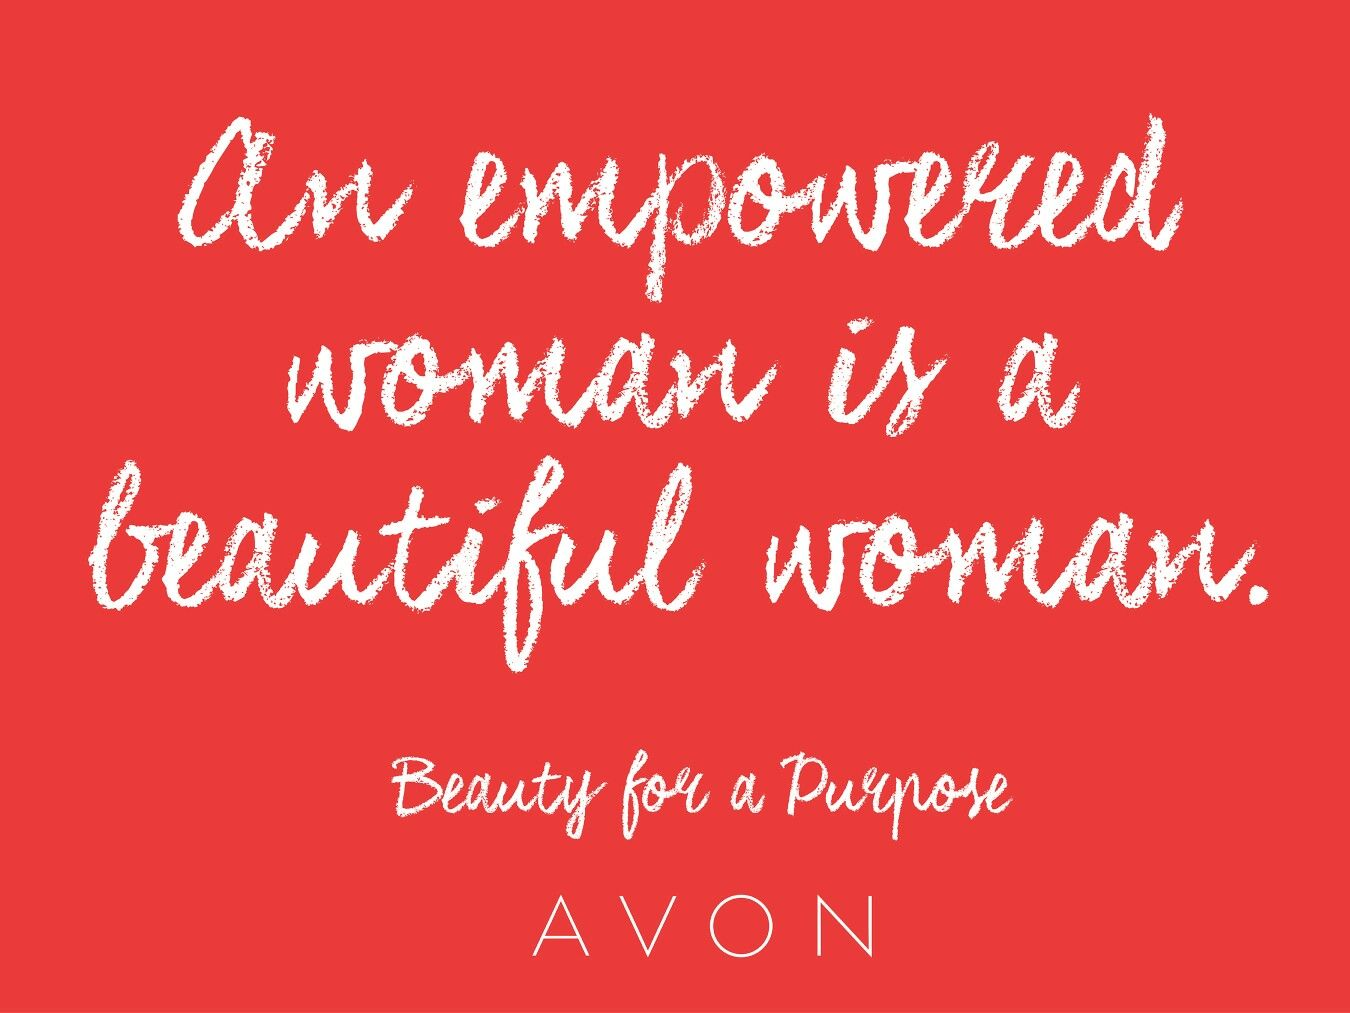 Avon has been empowering women for more than 130 years. #AvonRep